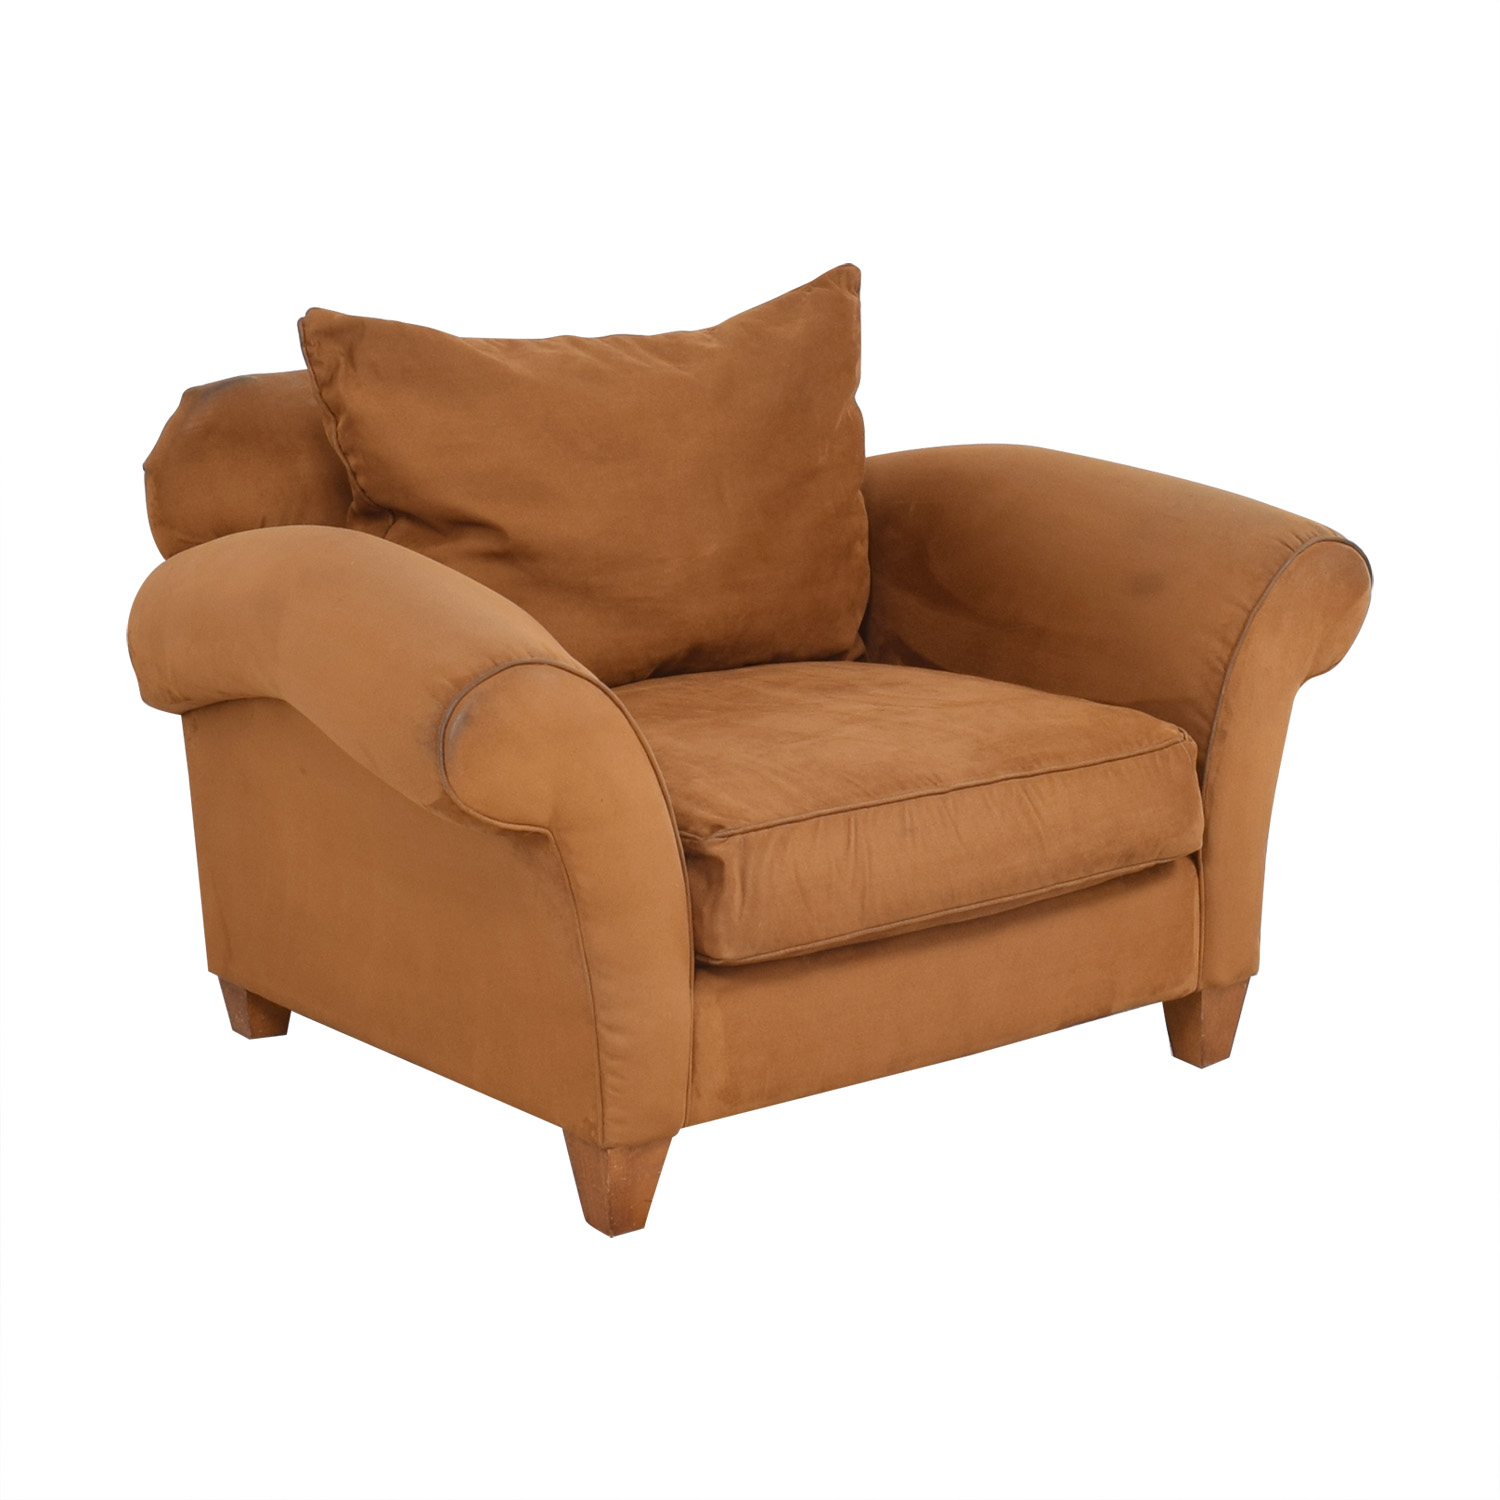 Storehouse Furniture Rolled Arm Chair sale